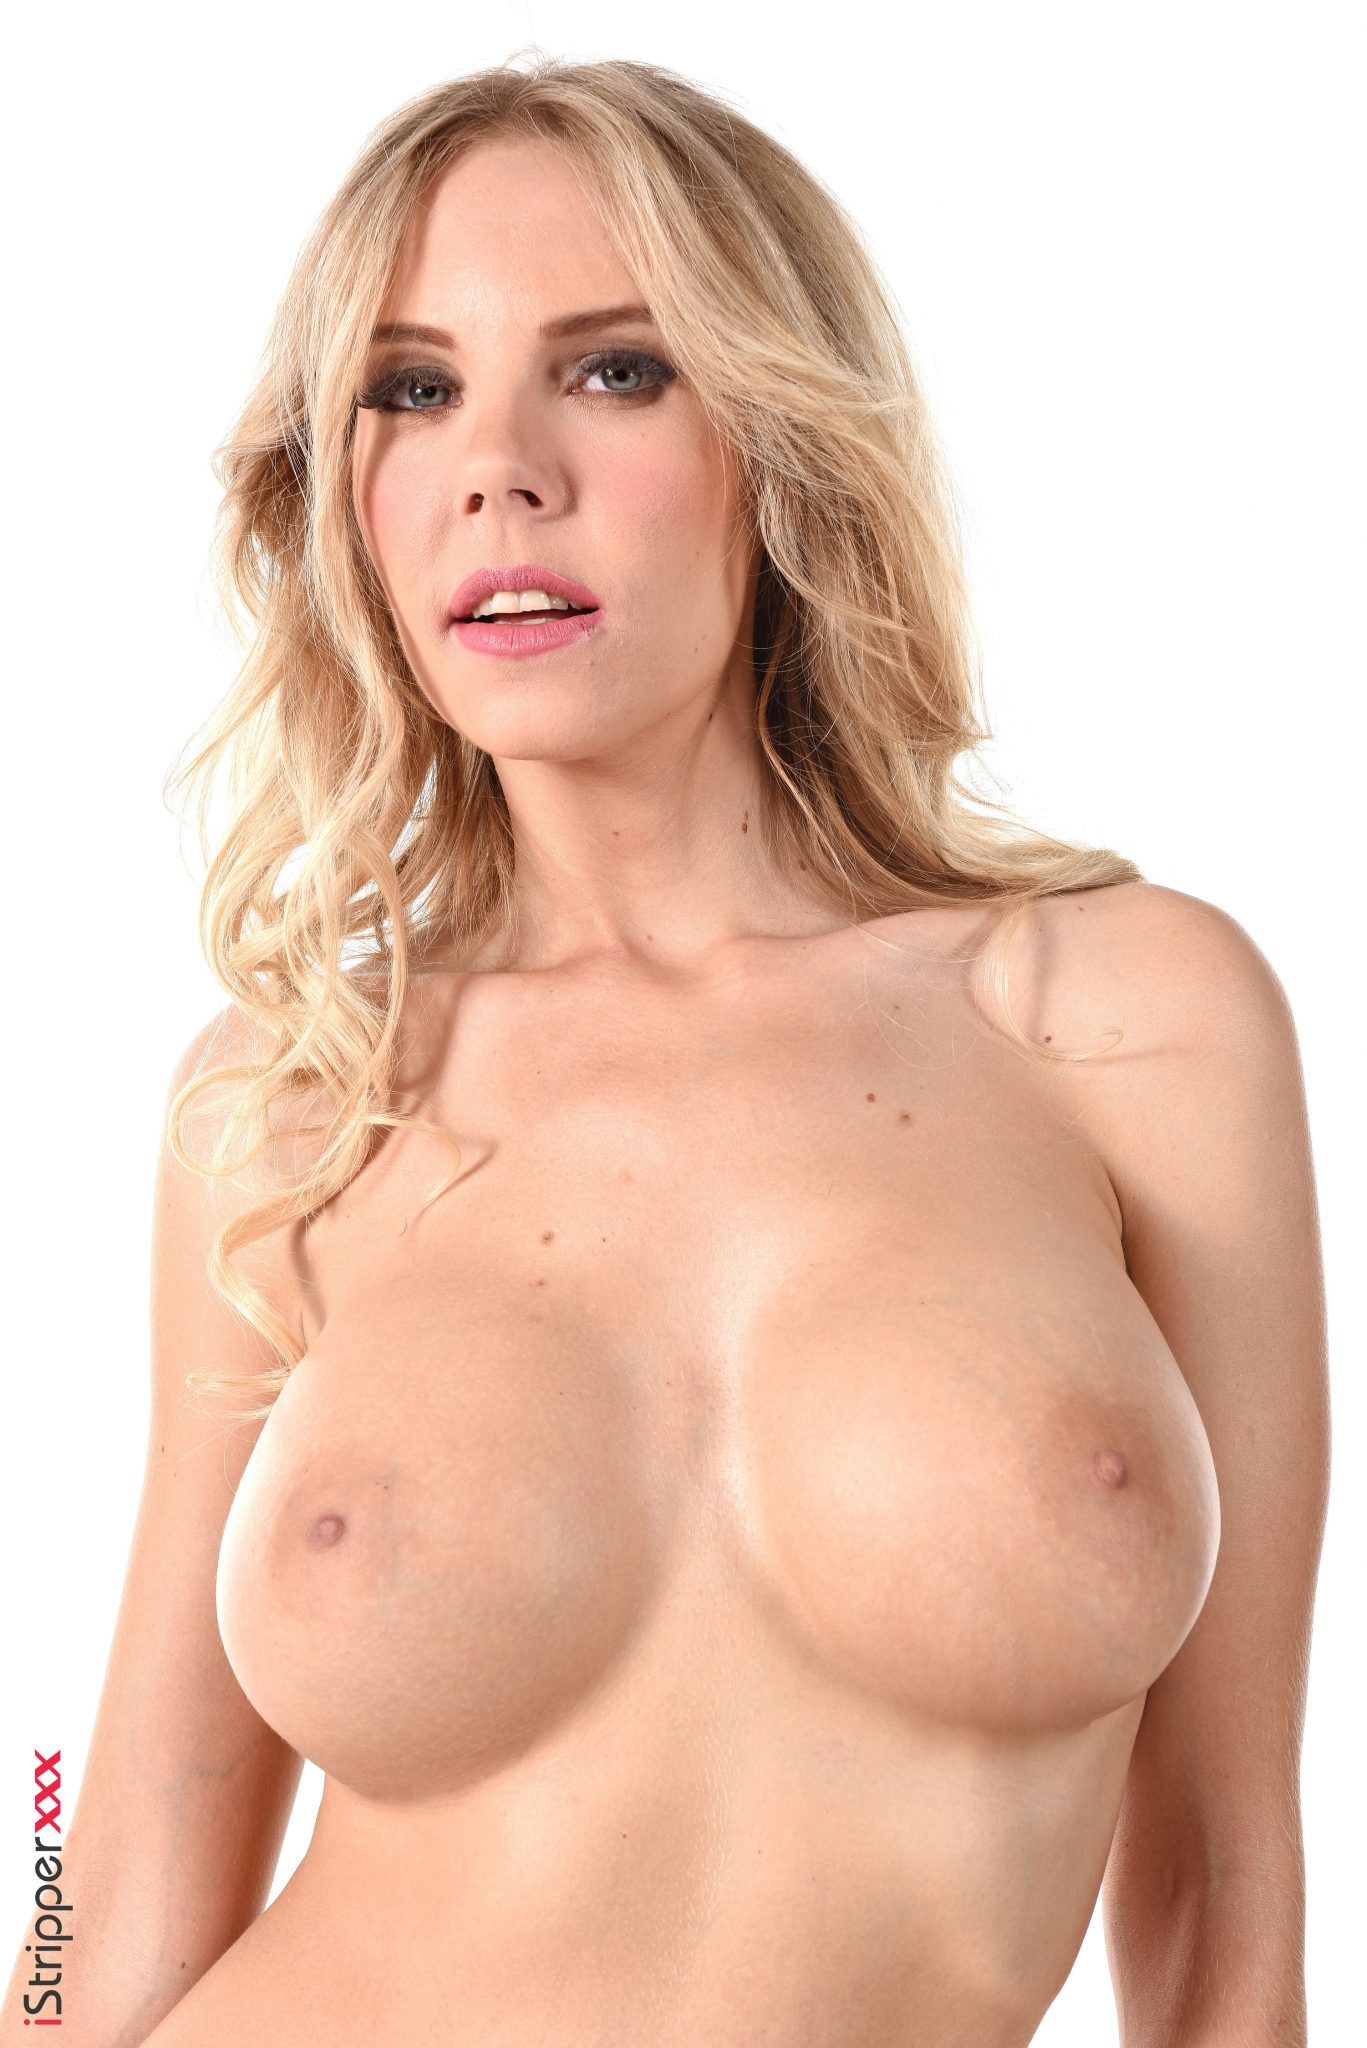 Big Titted Blonde Full Strip Tease Watch Florane Russell (8)